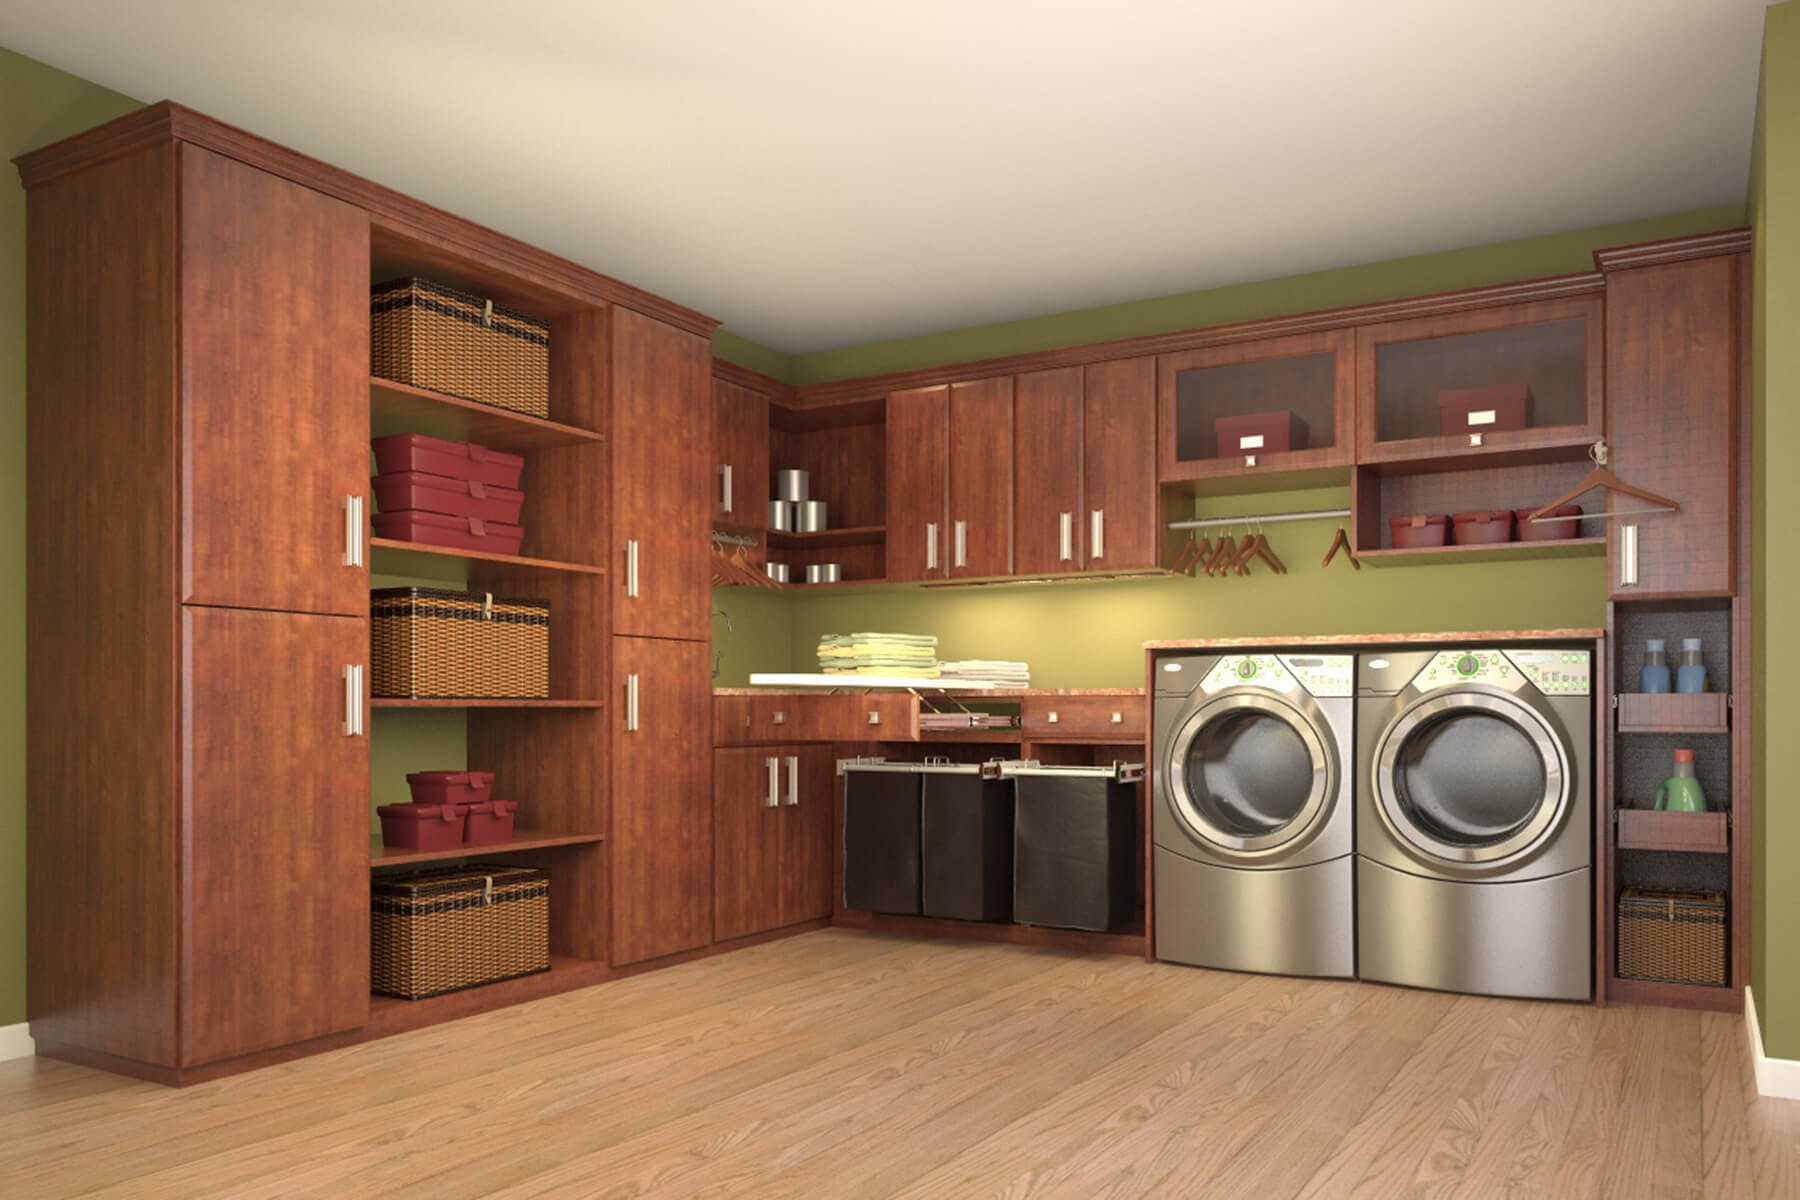 Laundry Room Cabinets | Makeover Design Ideas | Closet Factory on Laundry Cabinets Ideas  id=91270